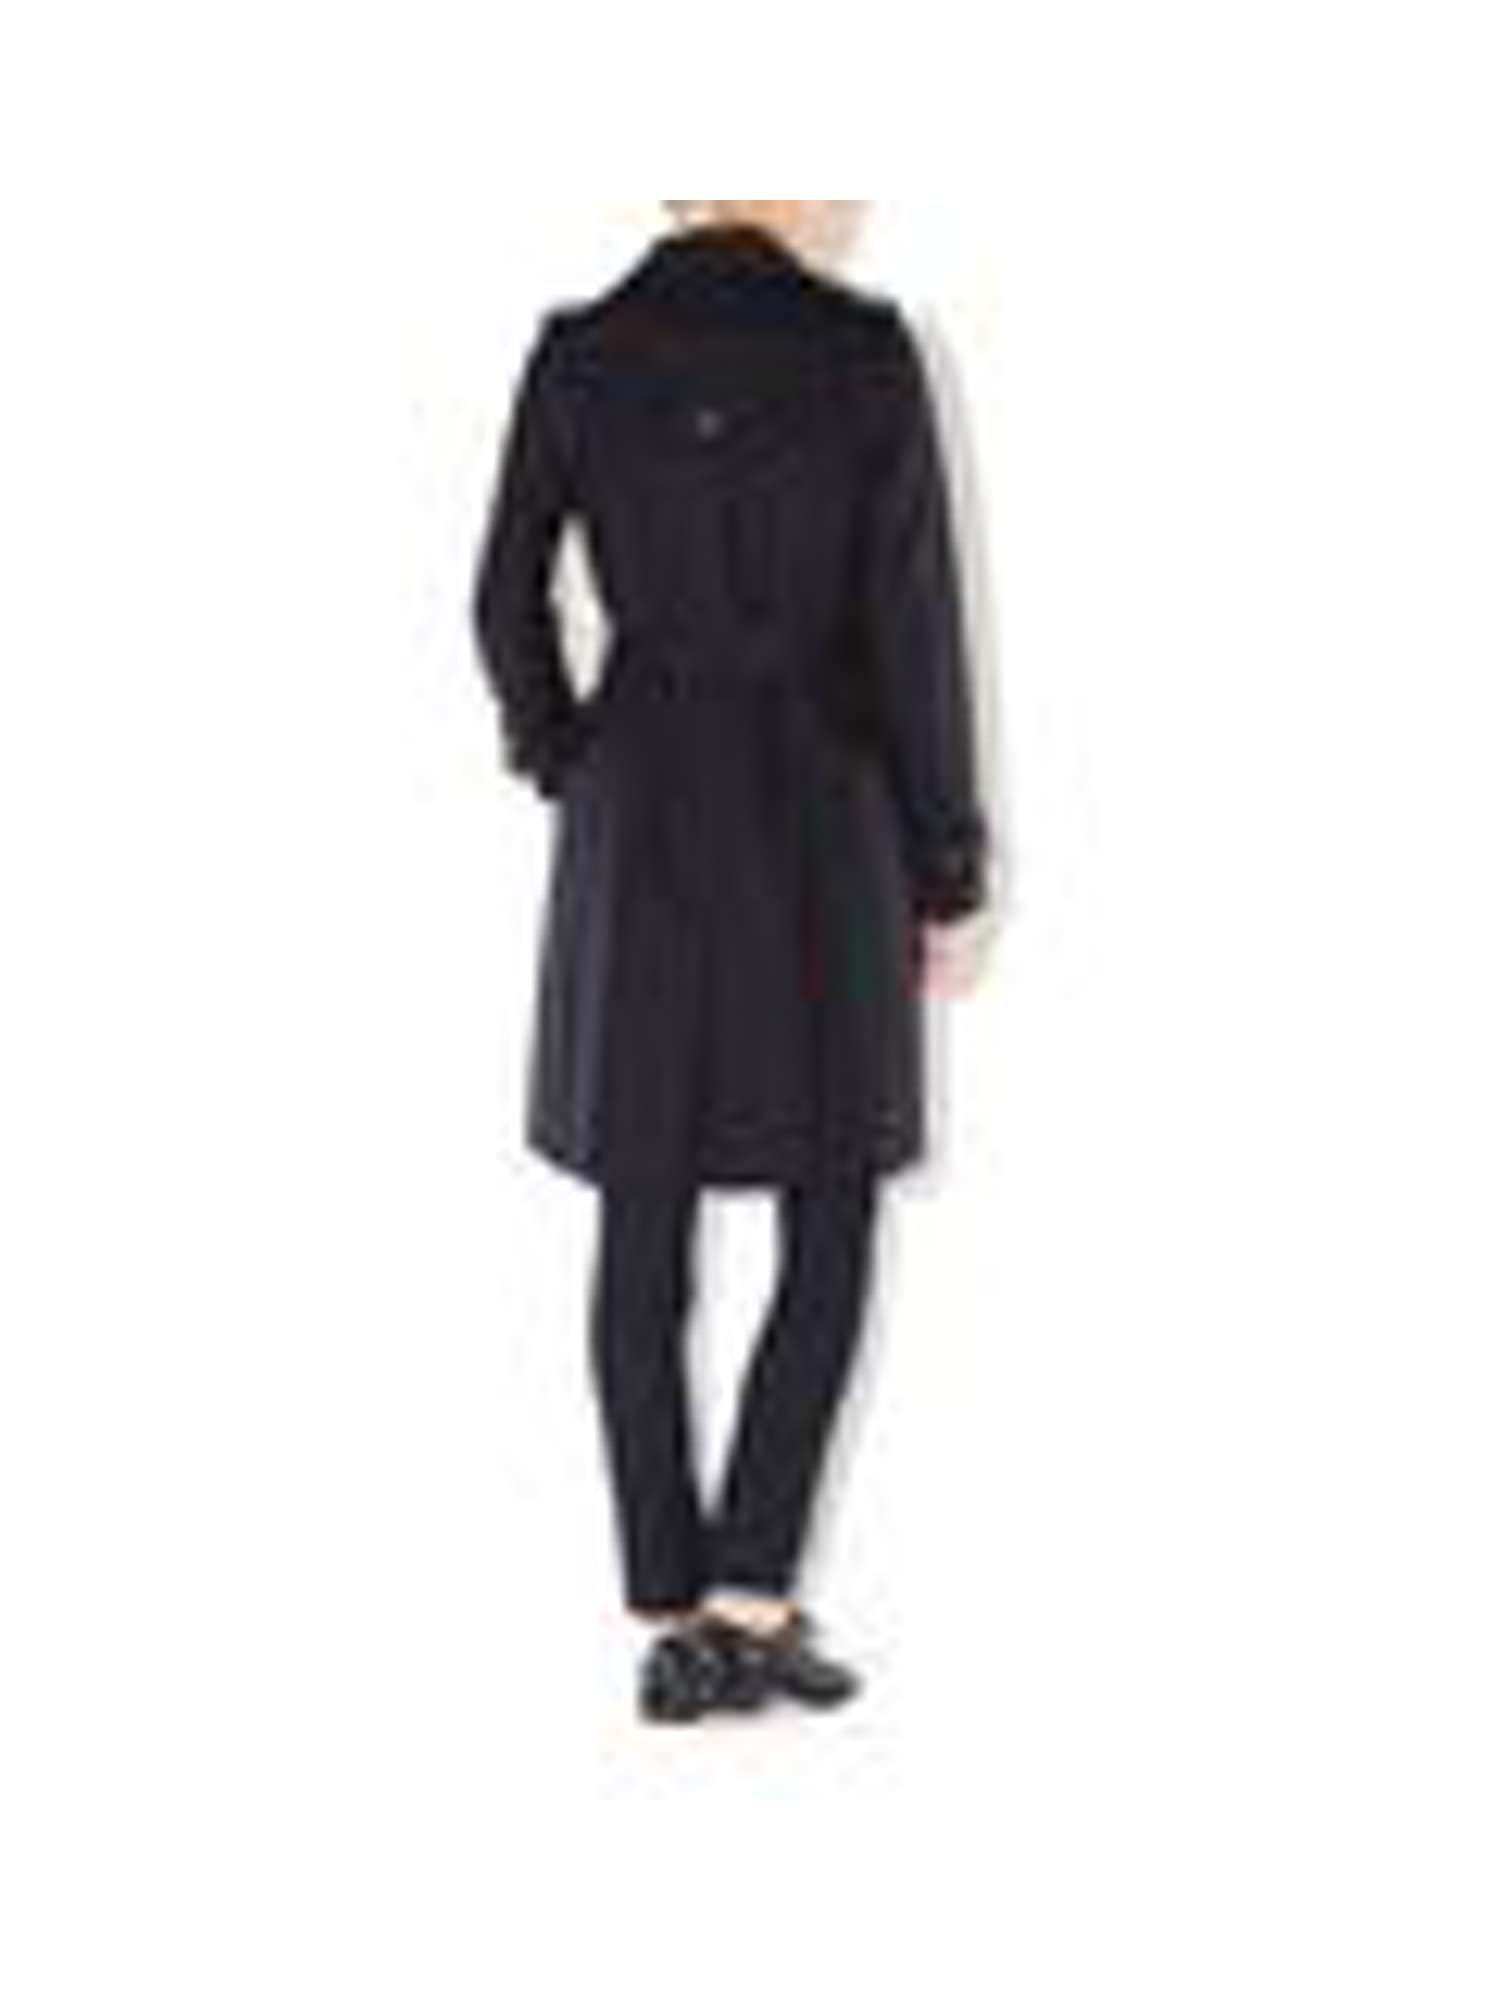 Hobbs Hobbs Saskia Trench Saskia Hobbs Saskia Trench Trench ffvUWr